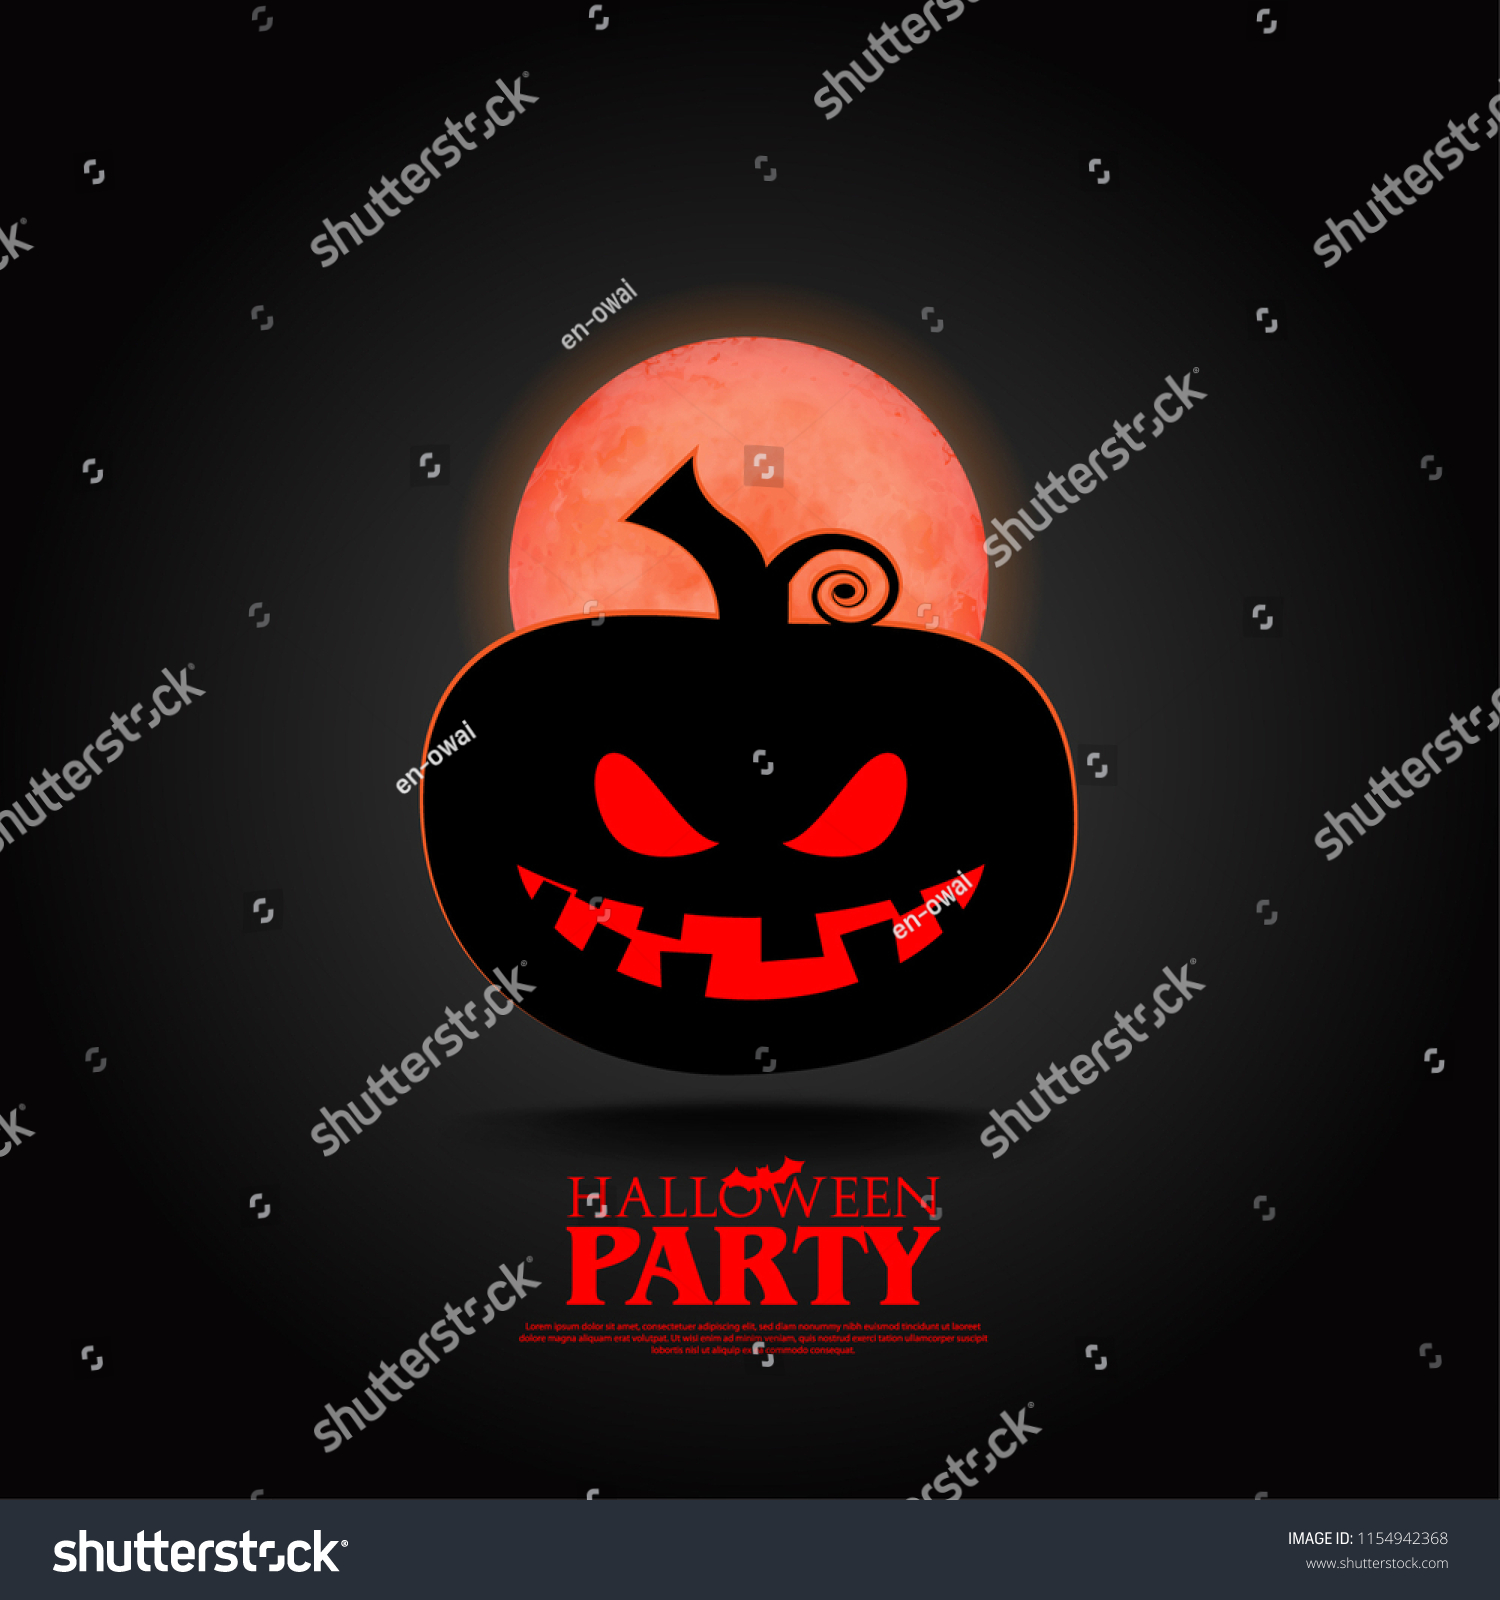 cute pumpkin halloween layout cover minimalist creative stock vector